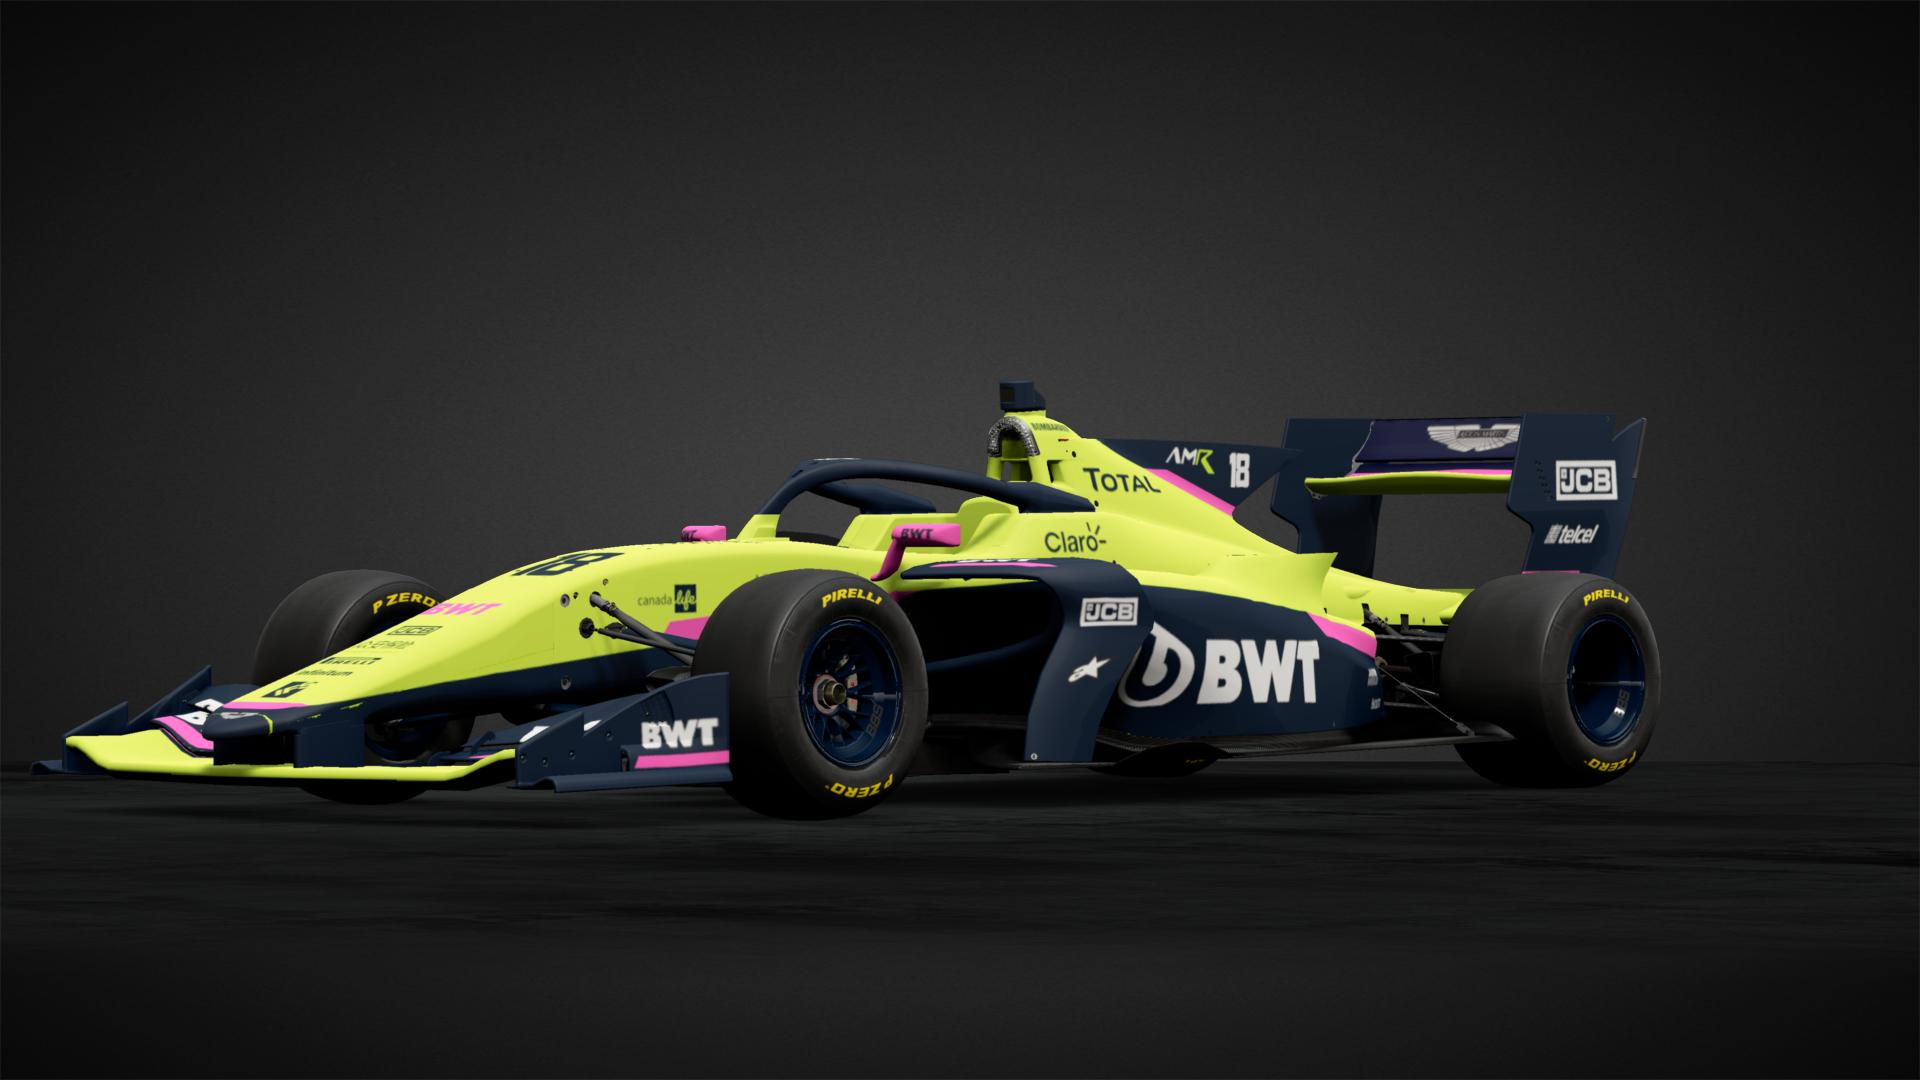 Aston Martin 2021 F1 Concept Car Livery By Tommywtf1 Community Gran Turismo Sport